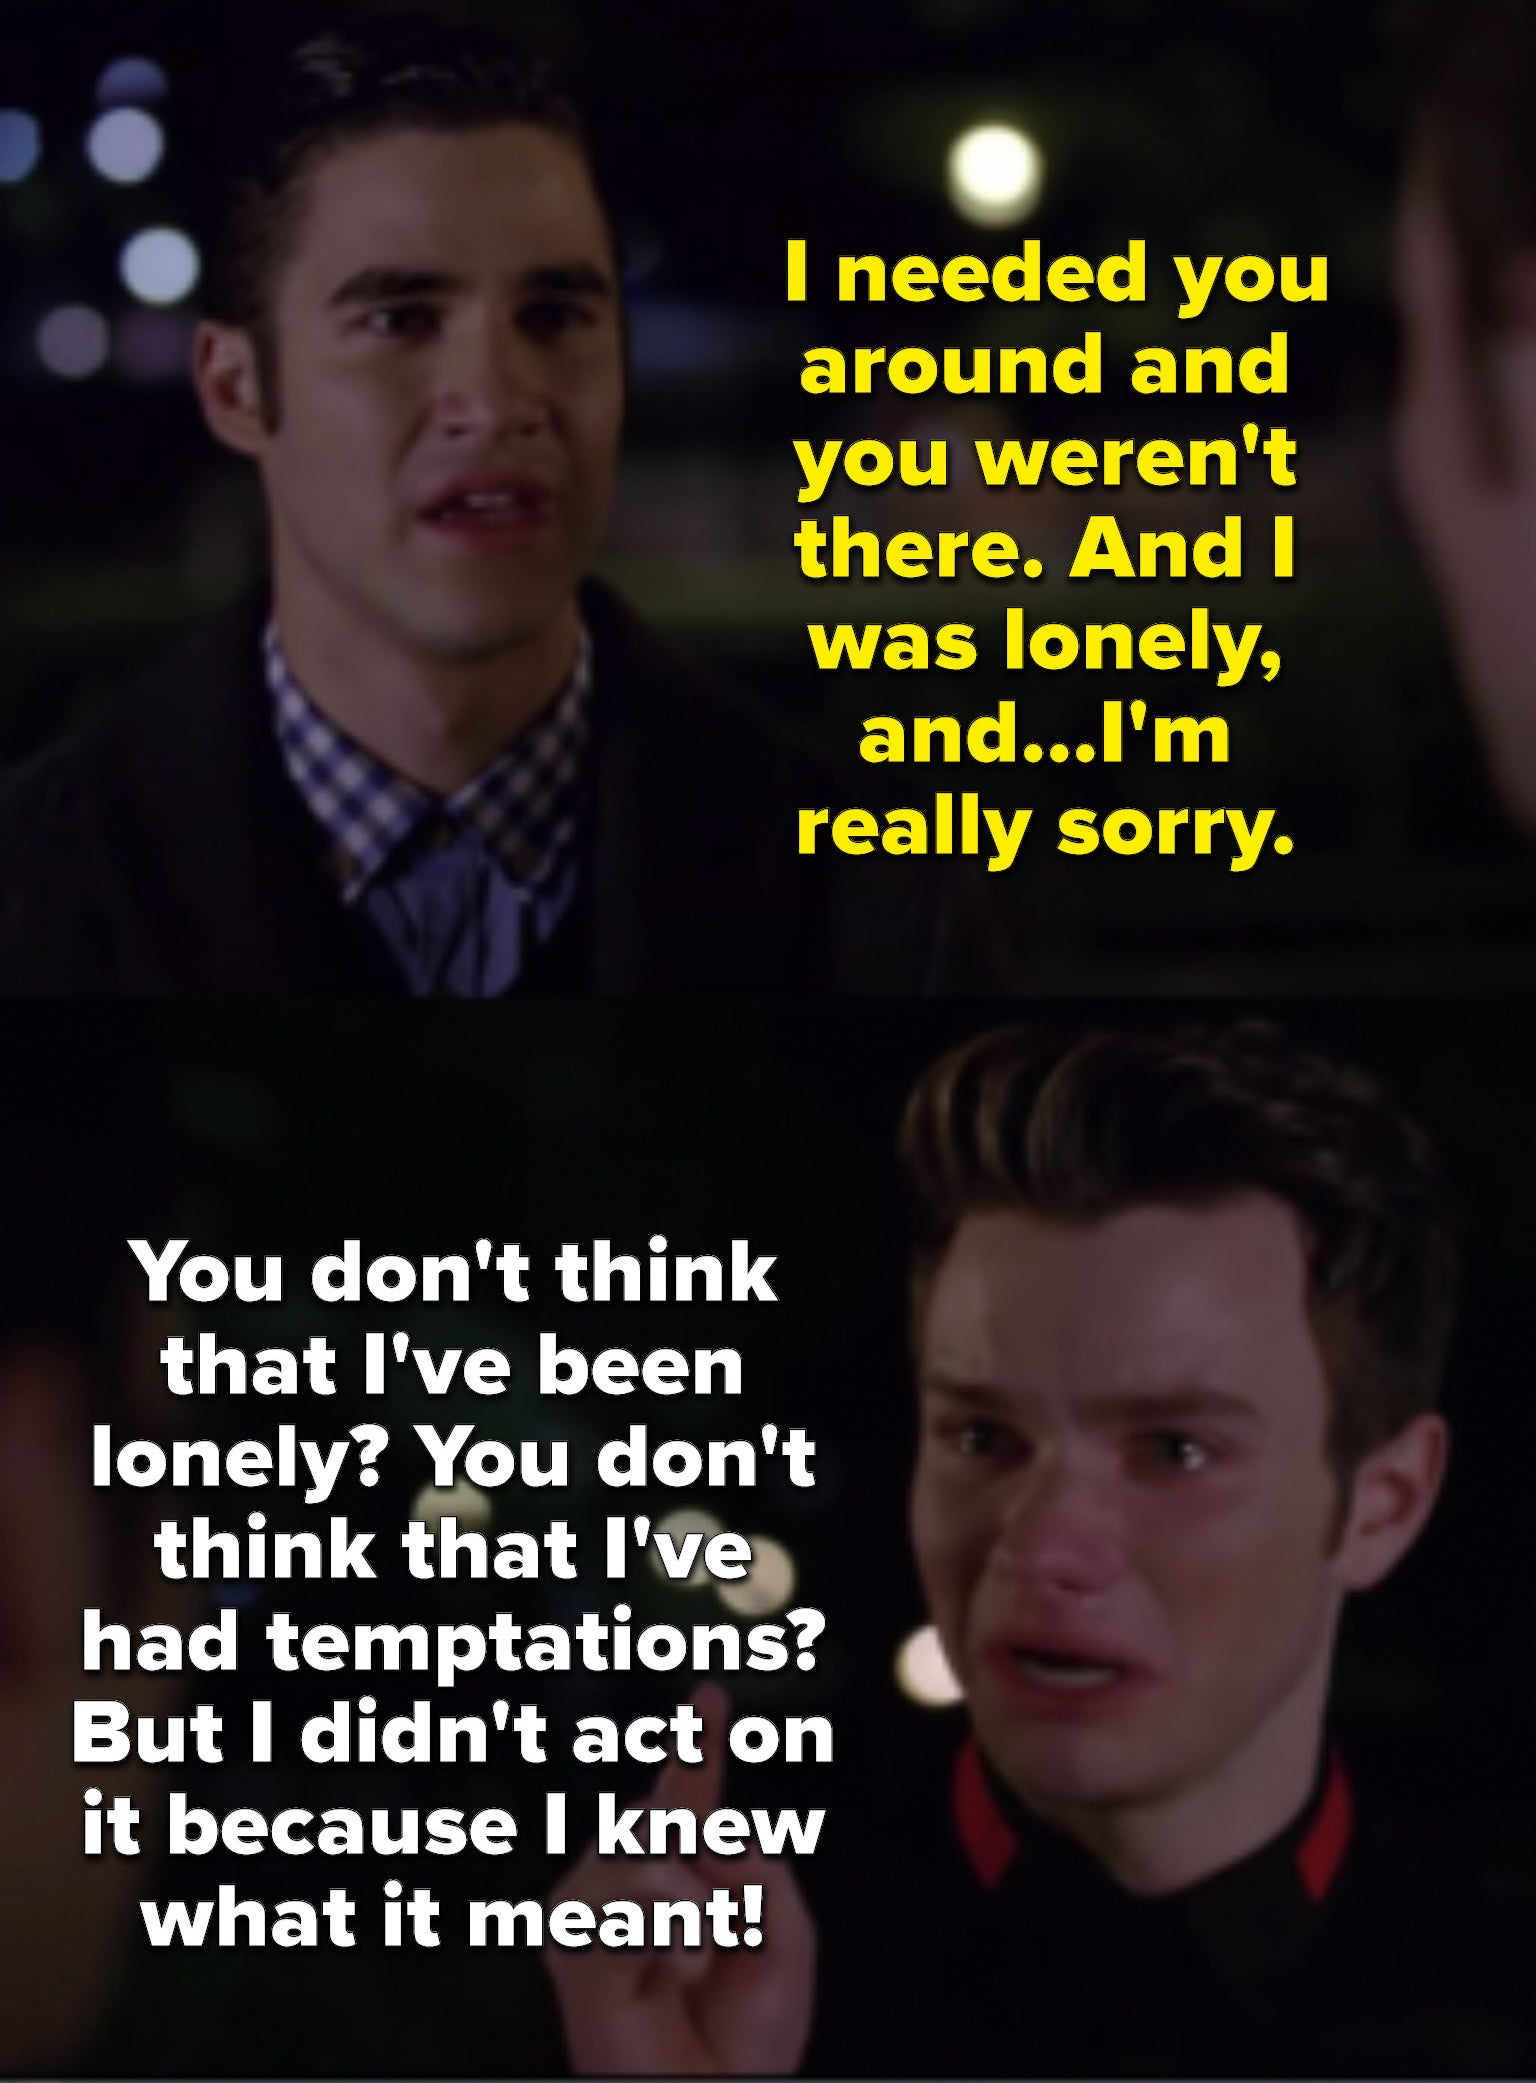 """Blaine: """"I needed you and you weren't there. And I was lonely, and...I'm really sorry."""" Kurt: """"You don't think that I've been lonely? You don't think that I've had temptations? But I didn't act on it because I knew what it meant!"""""""